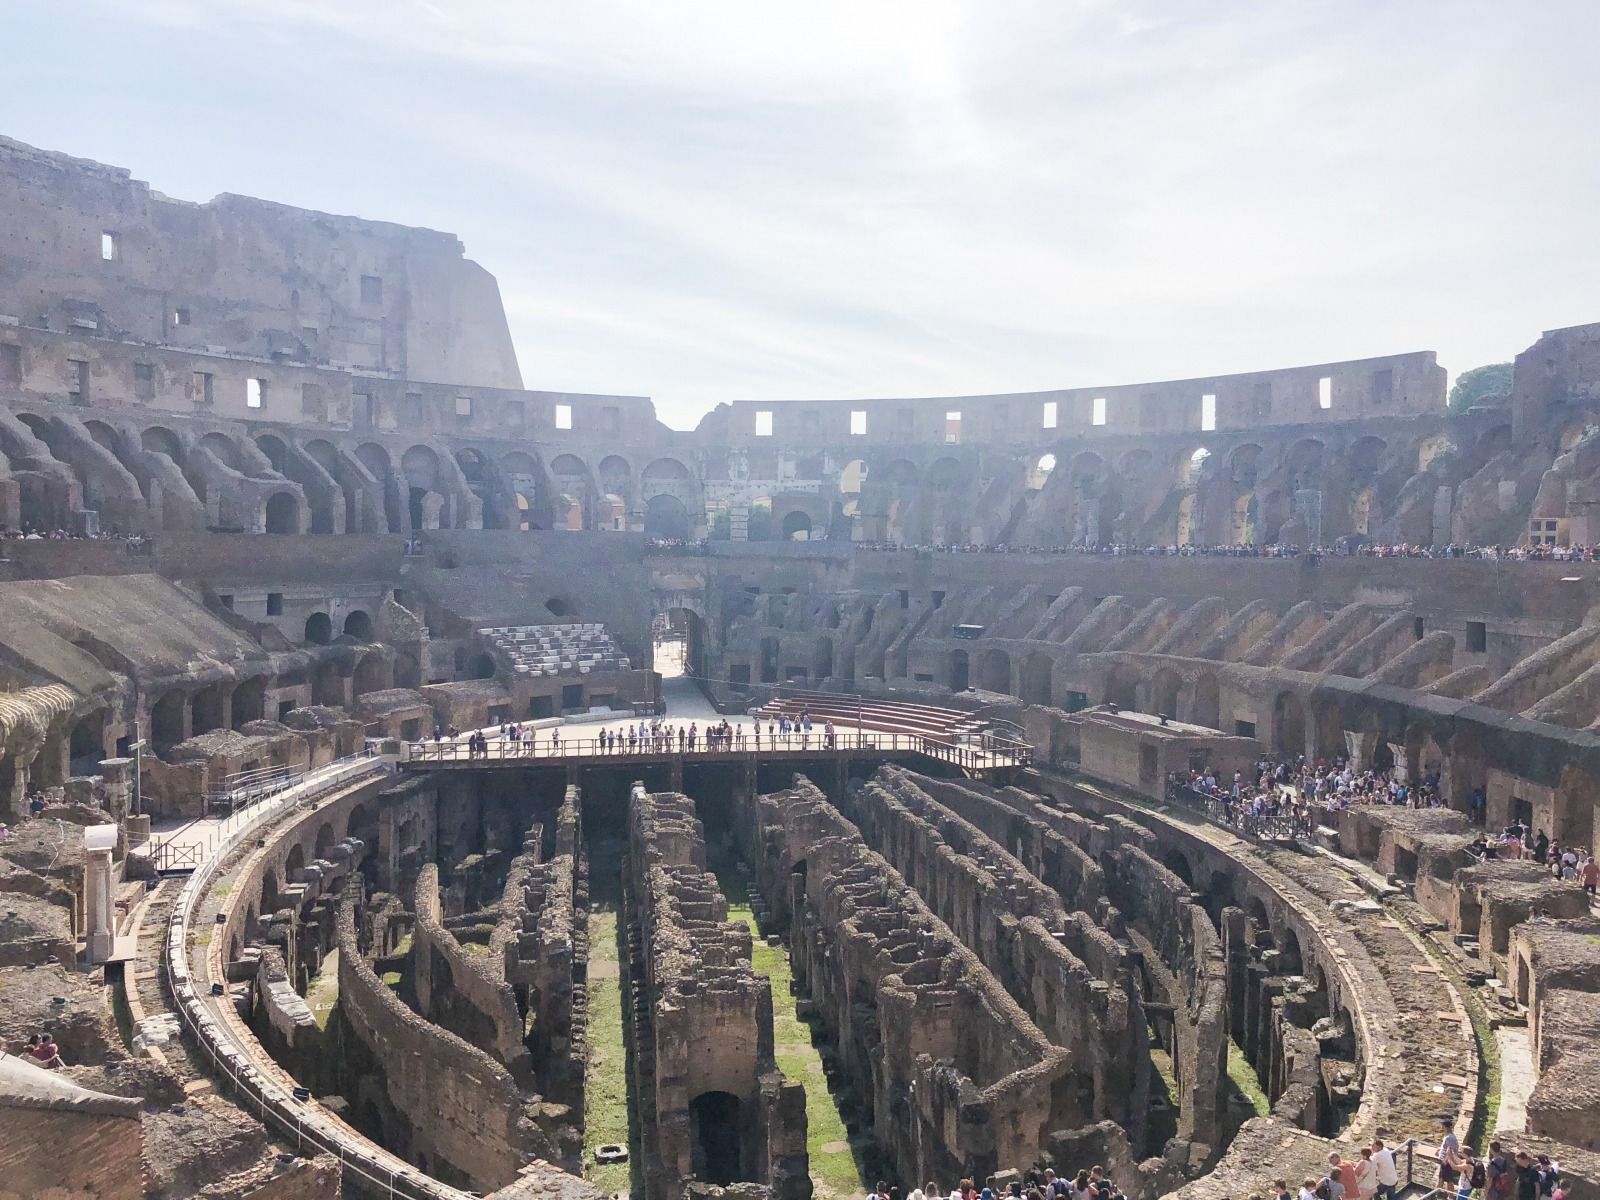 Travel Diary | The Colosseum in Rome, Italy